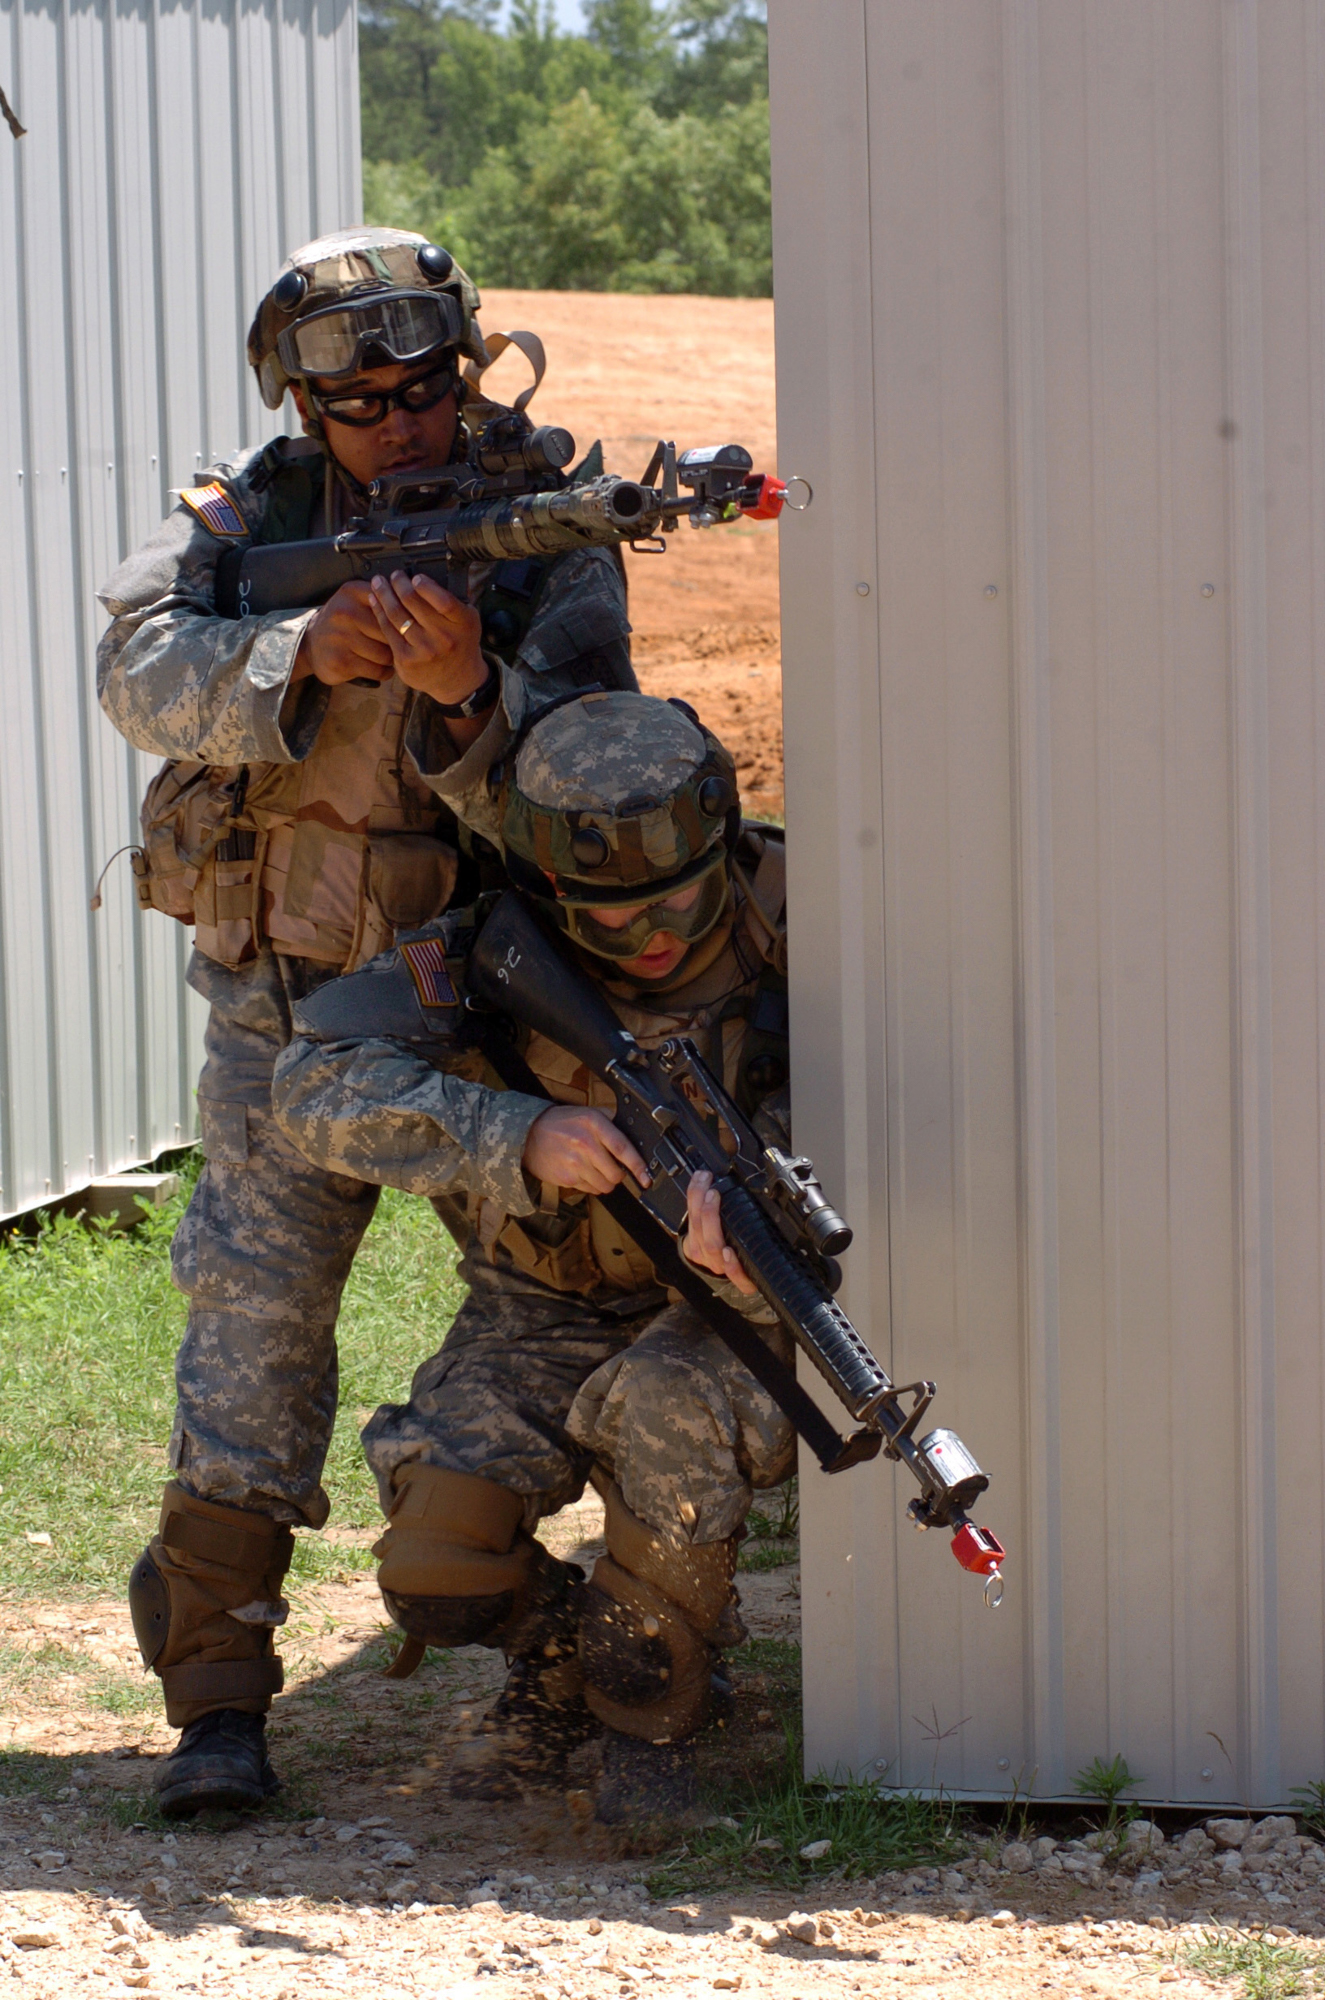 US-ARMY-TRAINING-JRTC-03.jpg